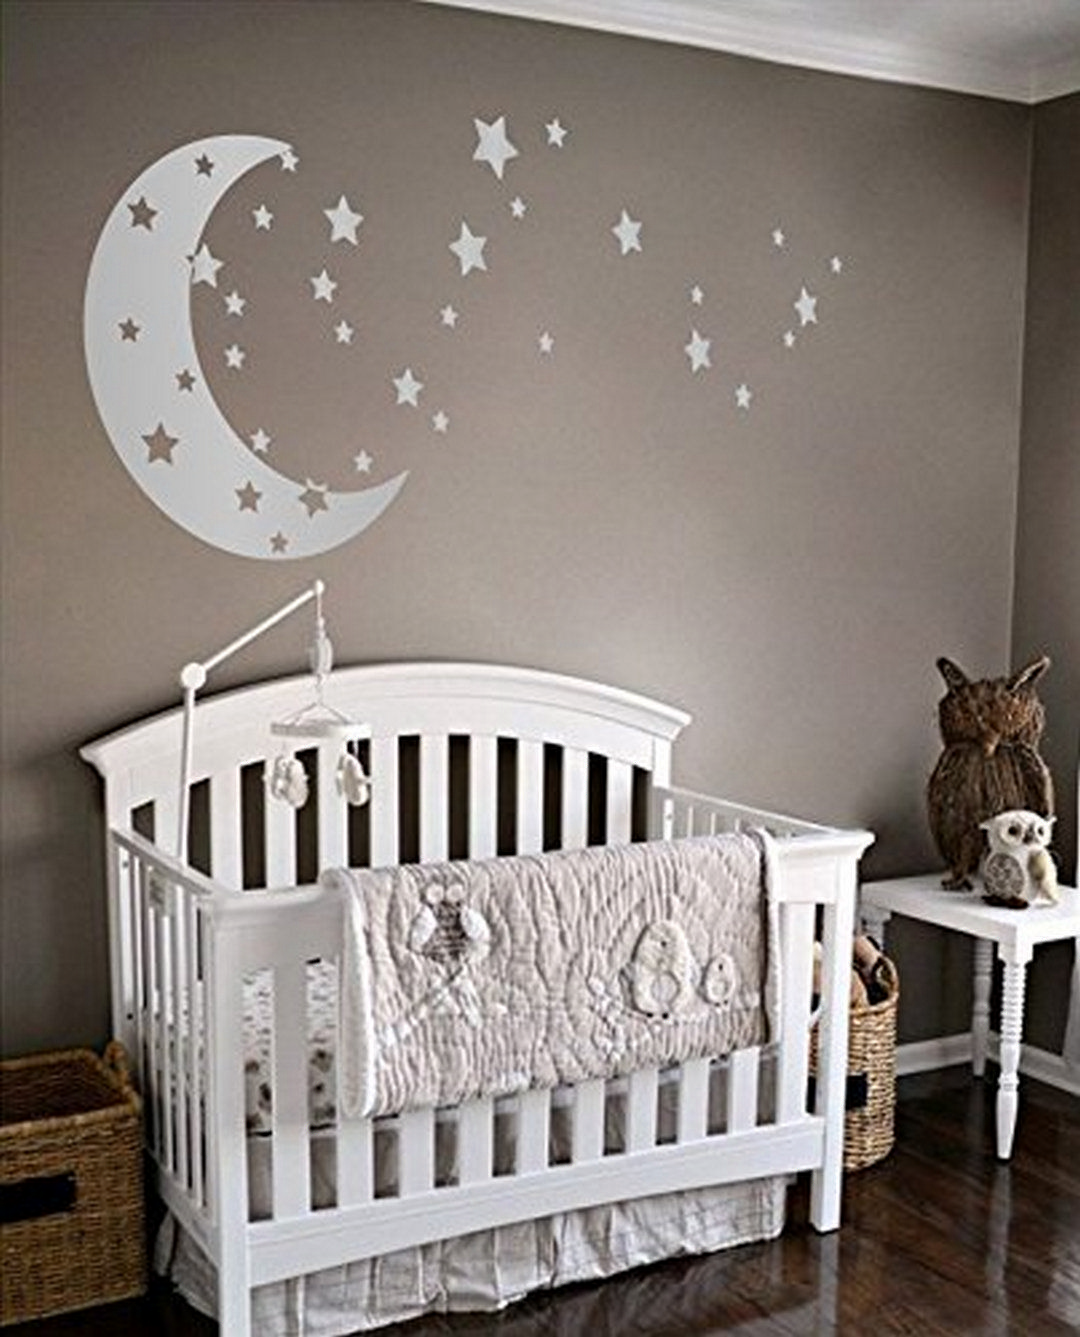 Moon And Stars Theme Baby Nursery Decorating Ideas Celestial Bedrooms Le Little Star Bedroom Decorations